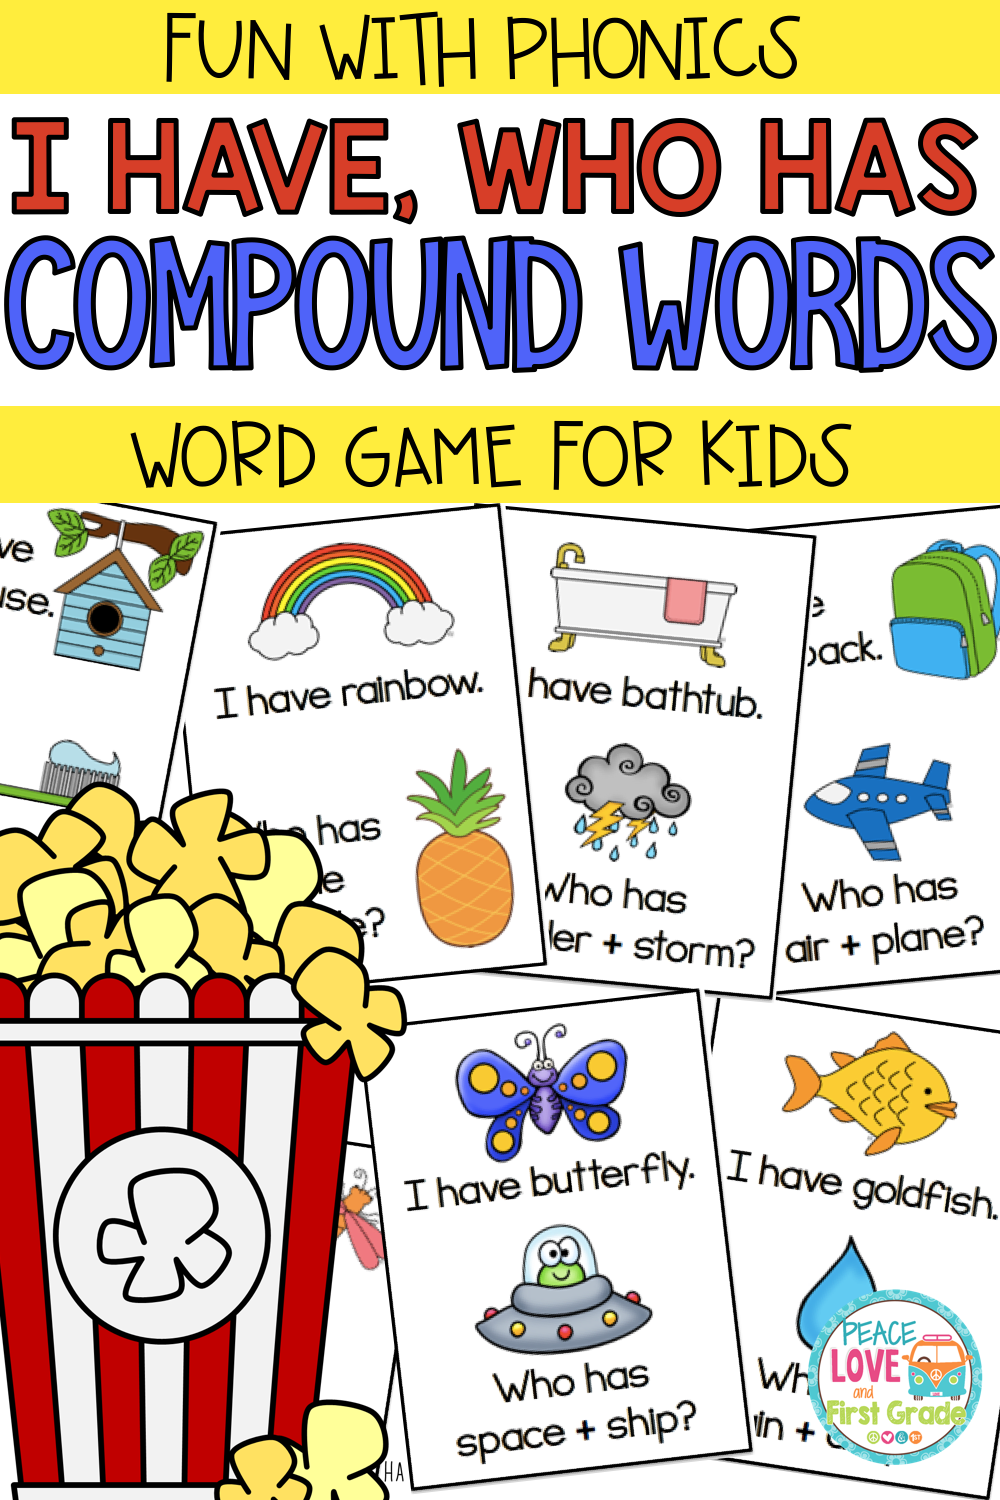 Compound Words Compound Words Word Games For Kids First Grade Reading [ 1500 x 1000 Pixel ]